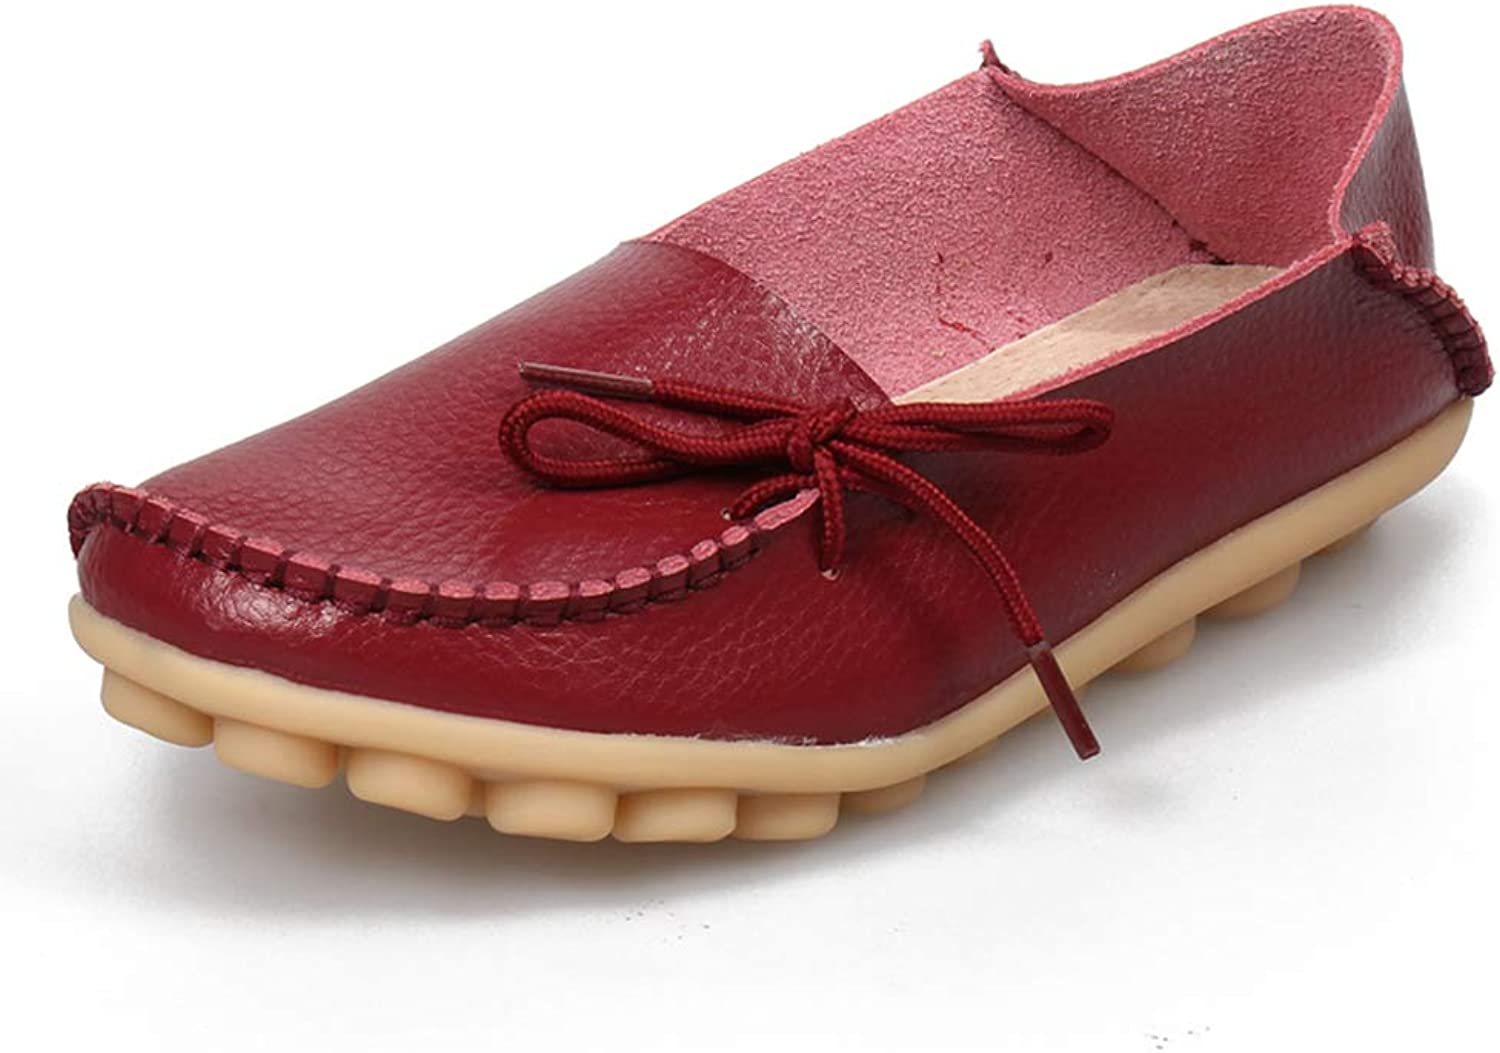 SHIBEVER Women's Leather Loafers Moccasins Wild Driving Casual Flats Oxfords Breathable shoes Burgundy 4.5